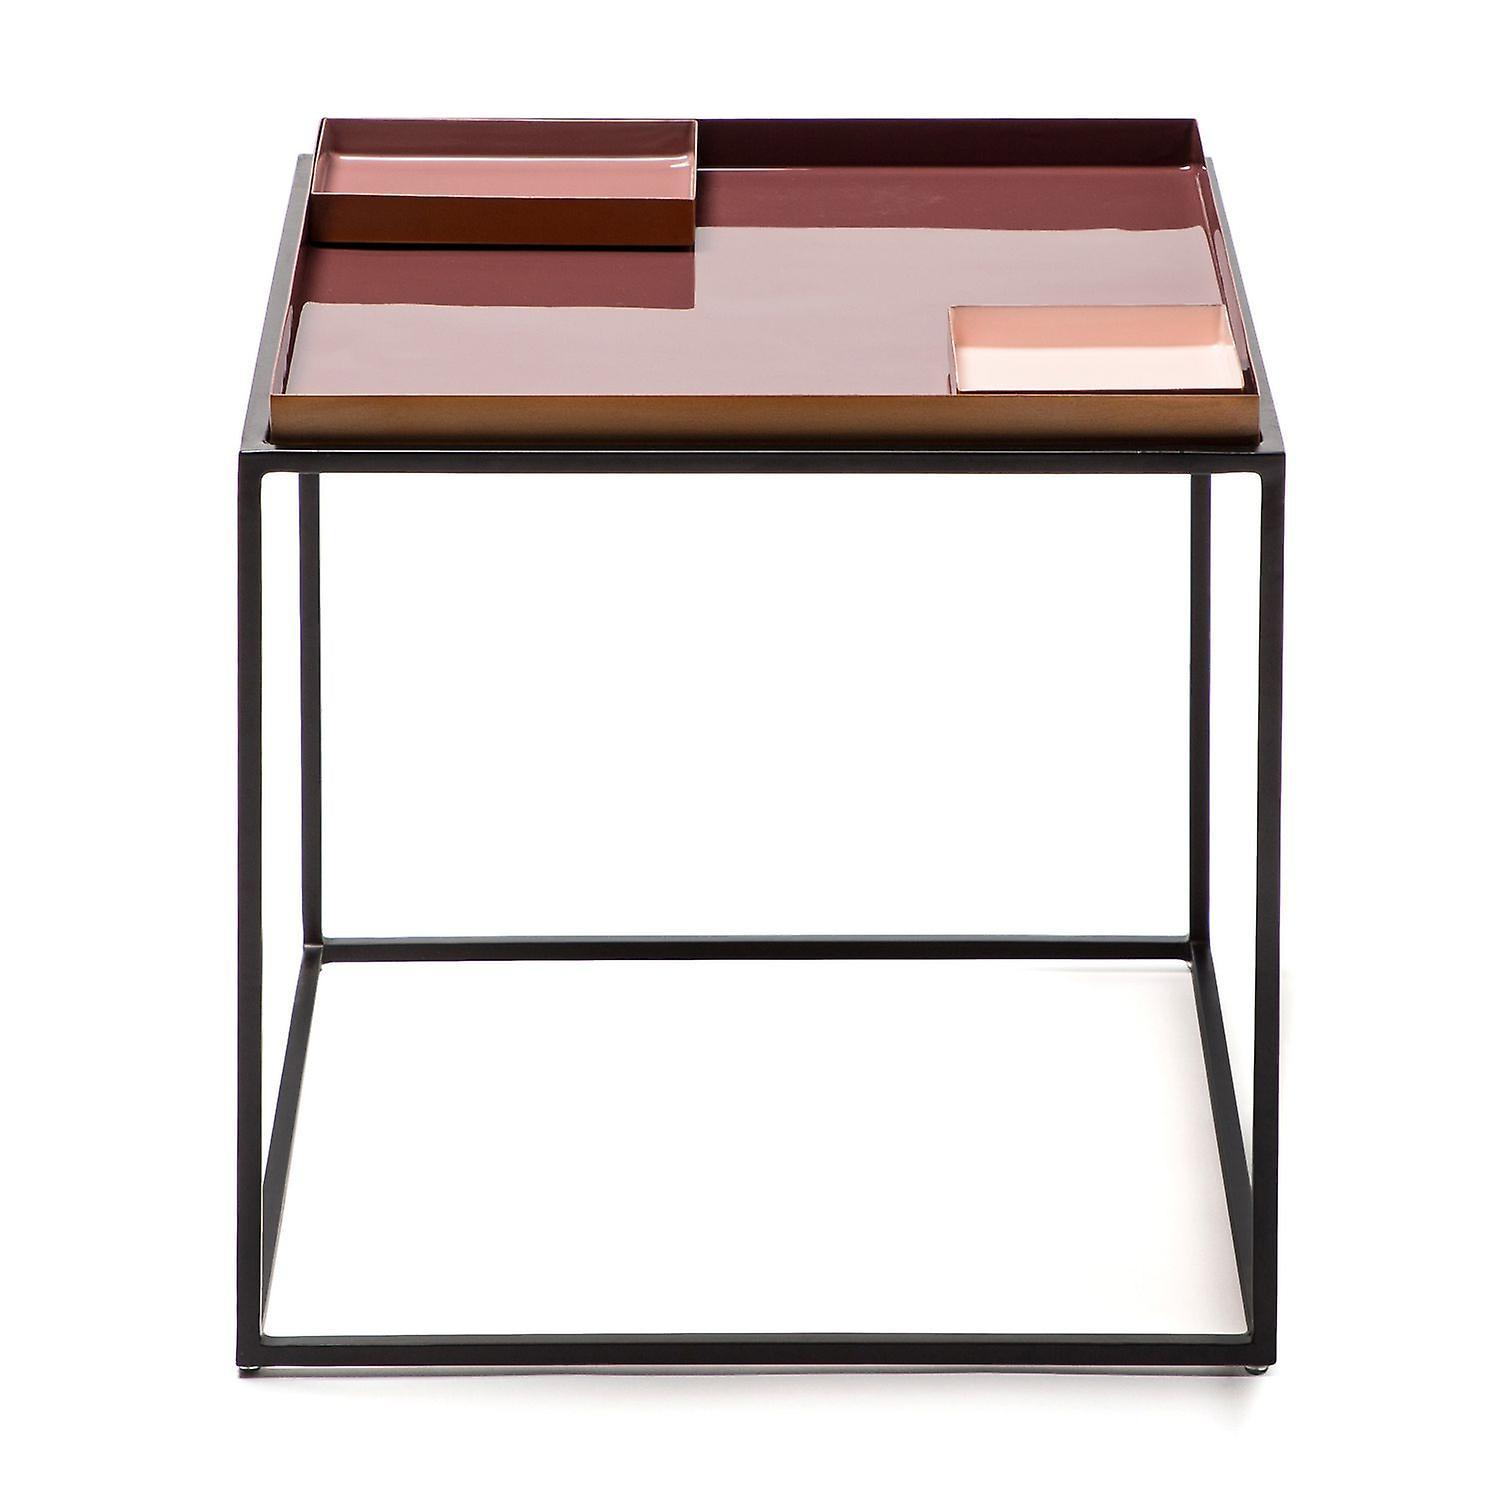 Wondrous Coffee Table Living Room Table Side Table Modern Storage Table Violet Rose Pink Download Free Architecture Designs Embacsunscenecom